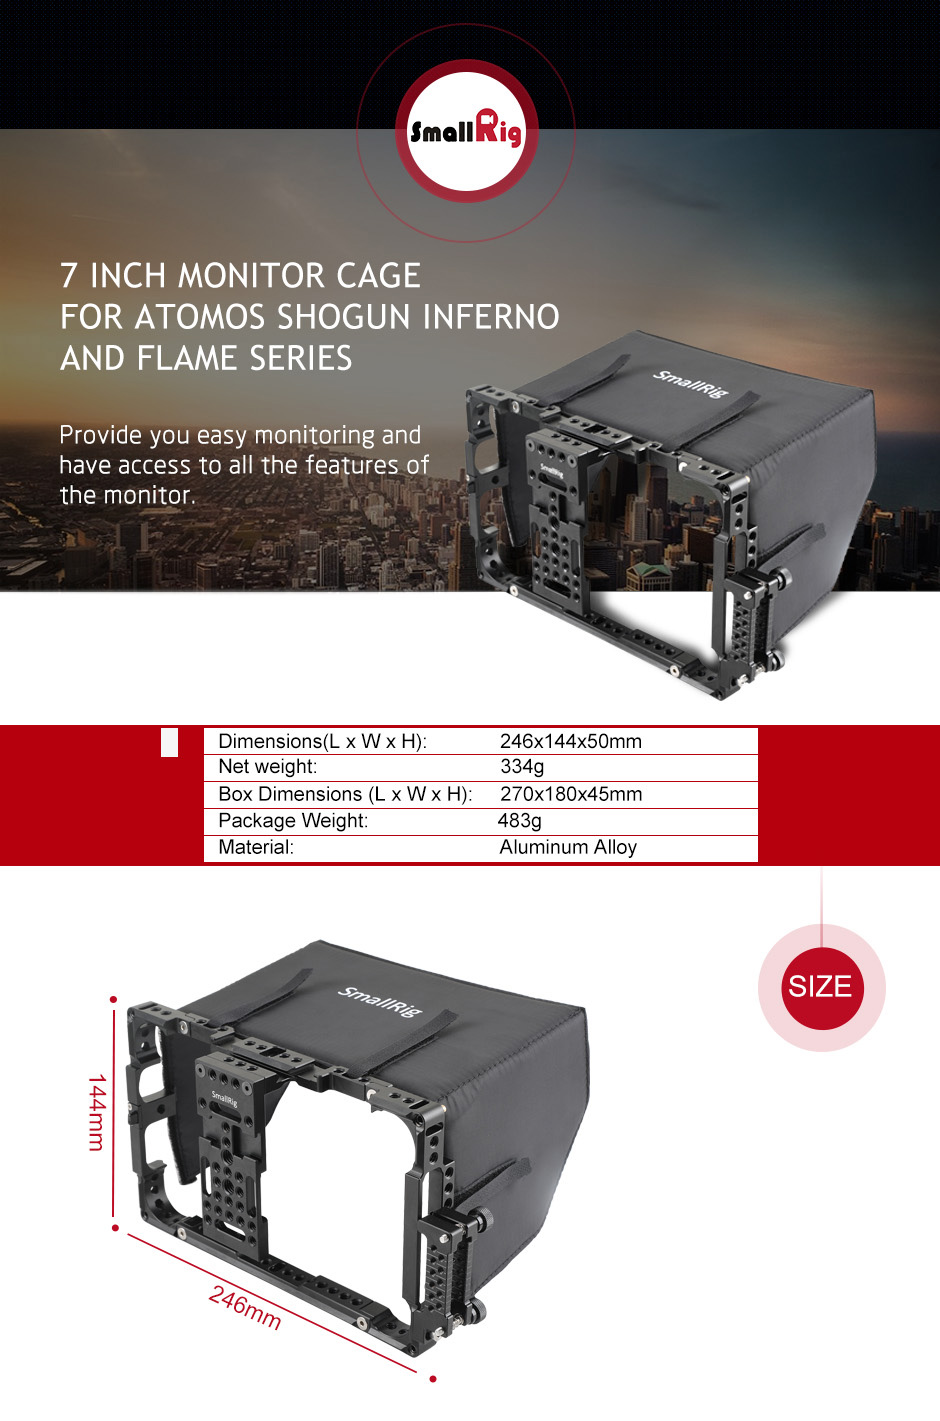 7 inch monitor cage